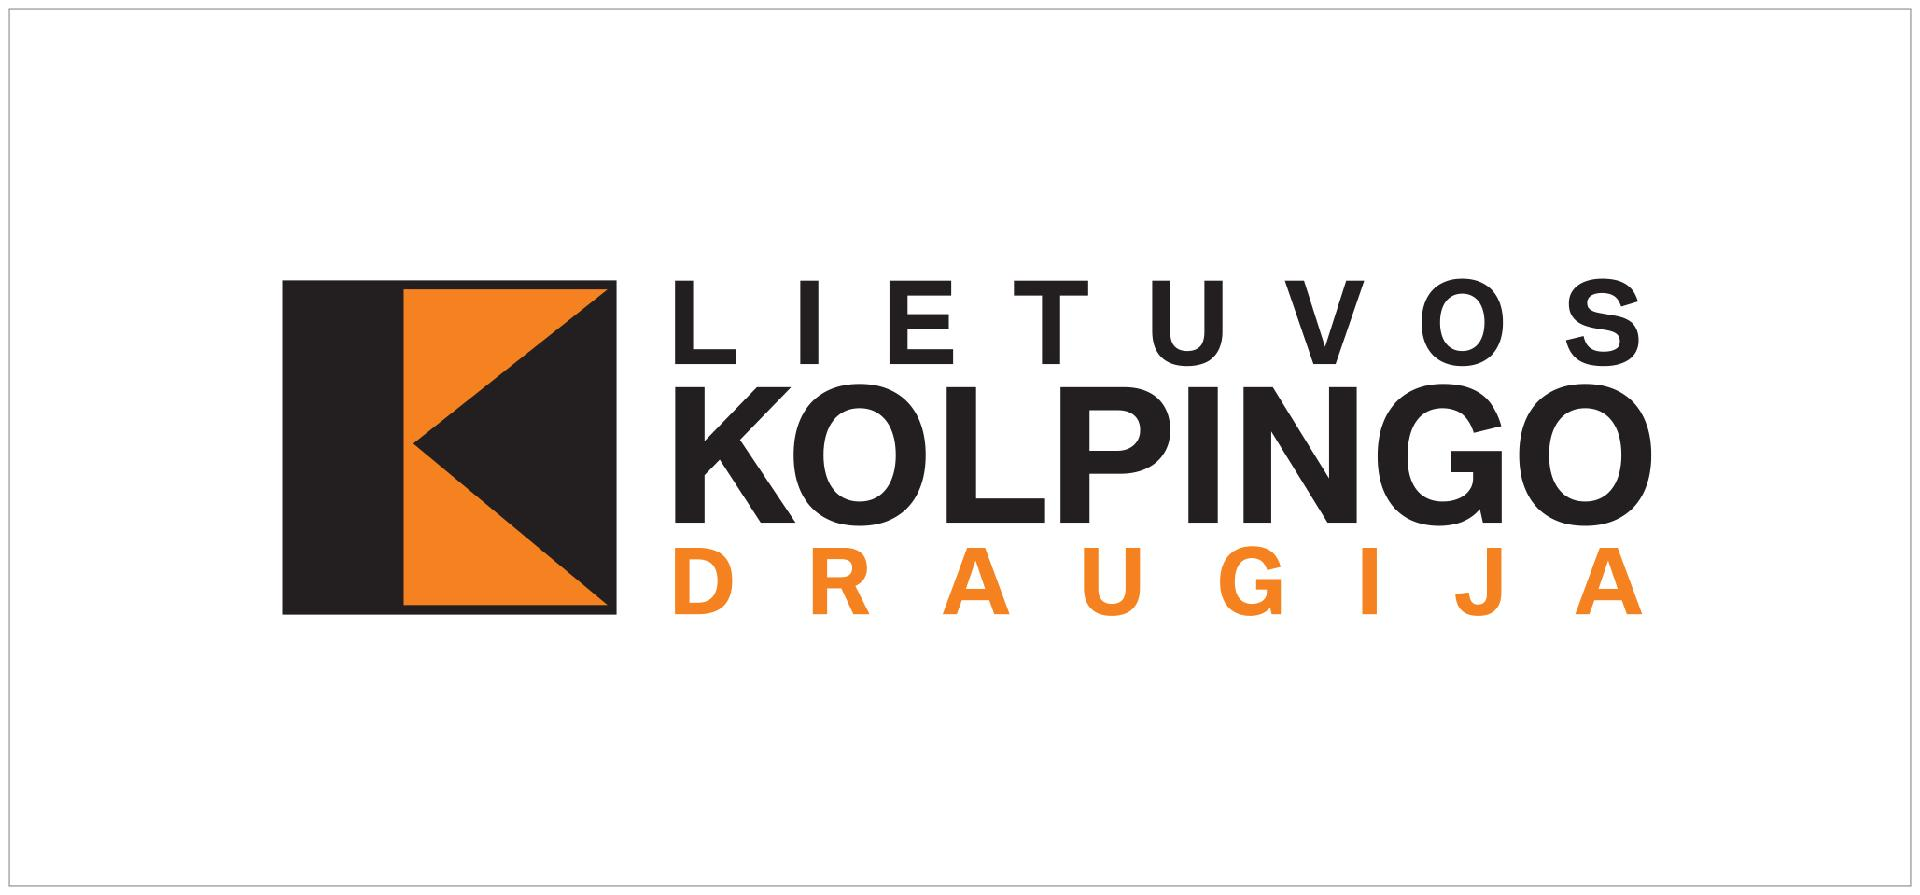 The Lithuanian Kolping Society